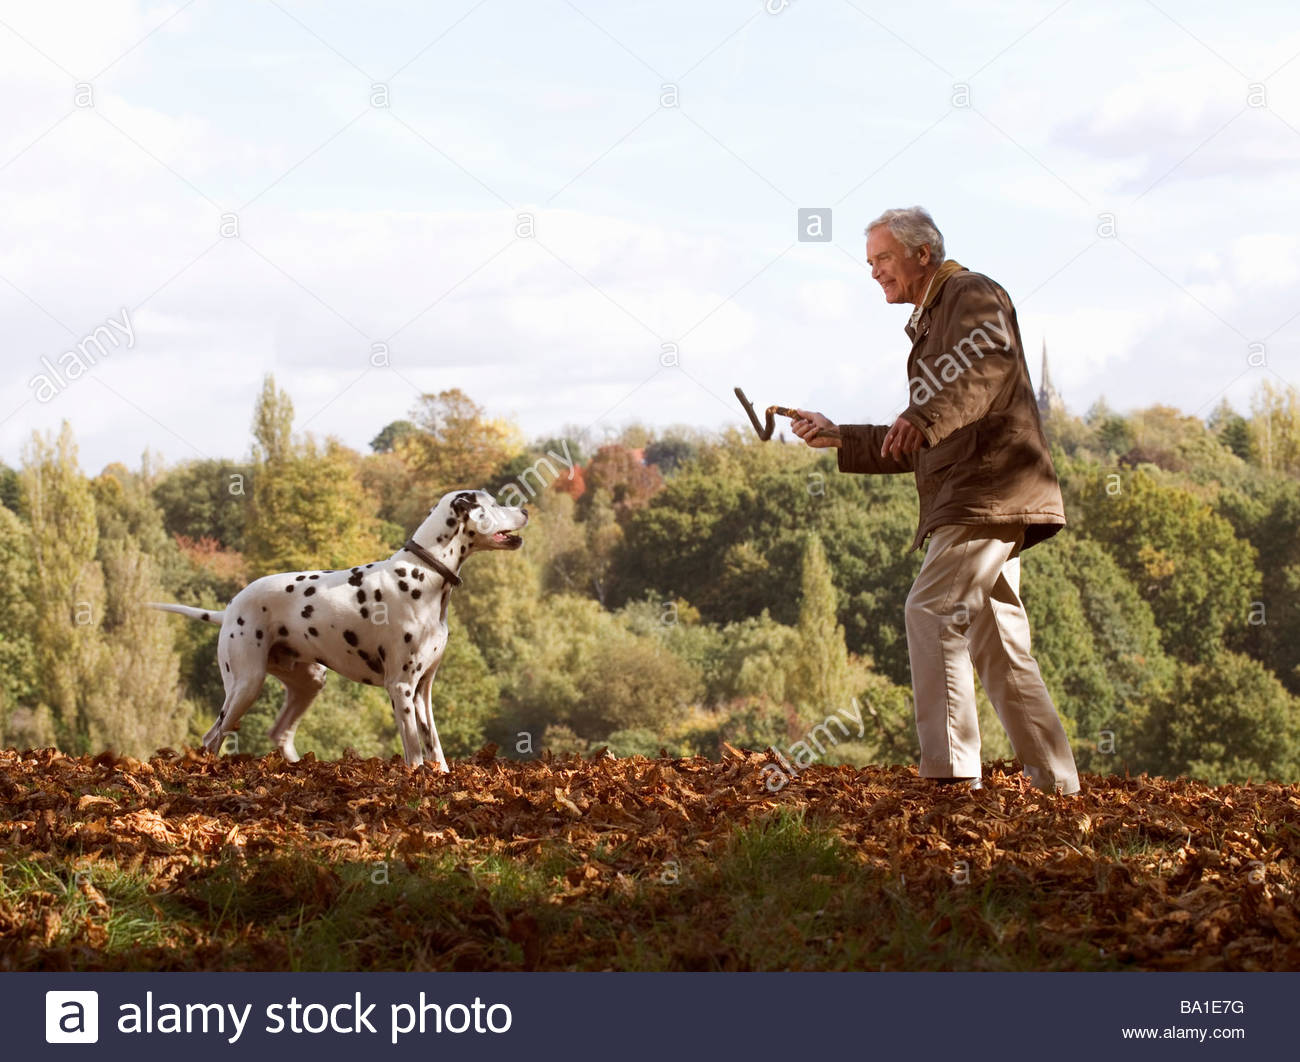 A senior man playing with his dog amongst the autumn leaves - Stock Image